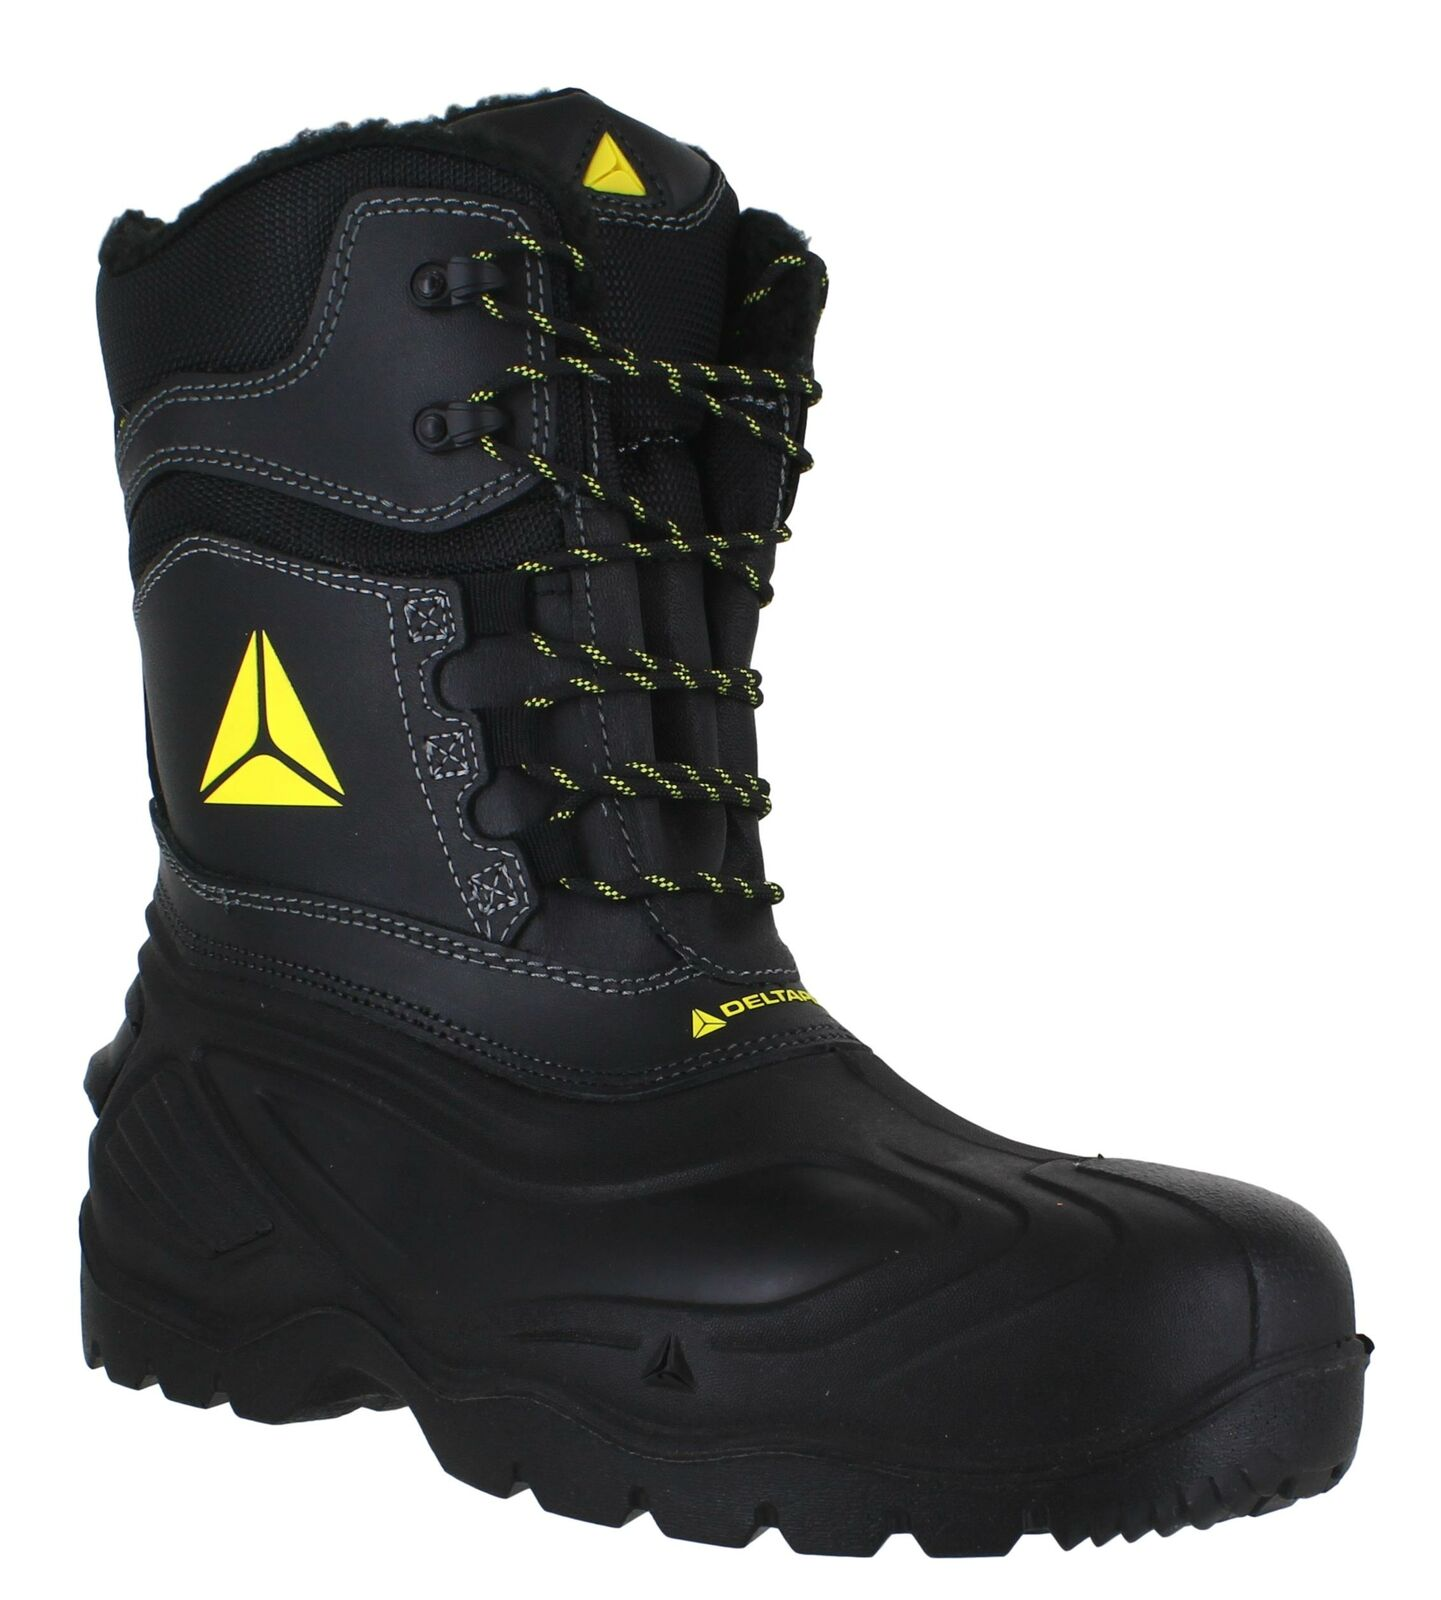 Mens Delta-Plus Waterproof Tall Safety Composite Toe/Midsole Boots Sizes 7 to 12